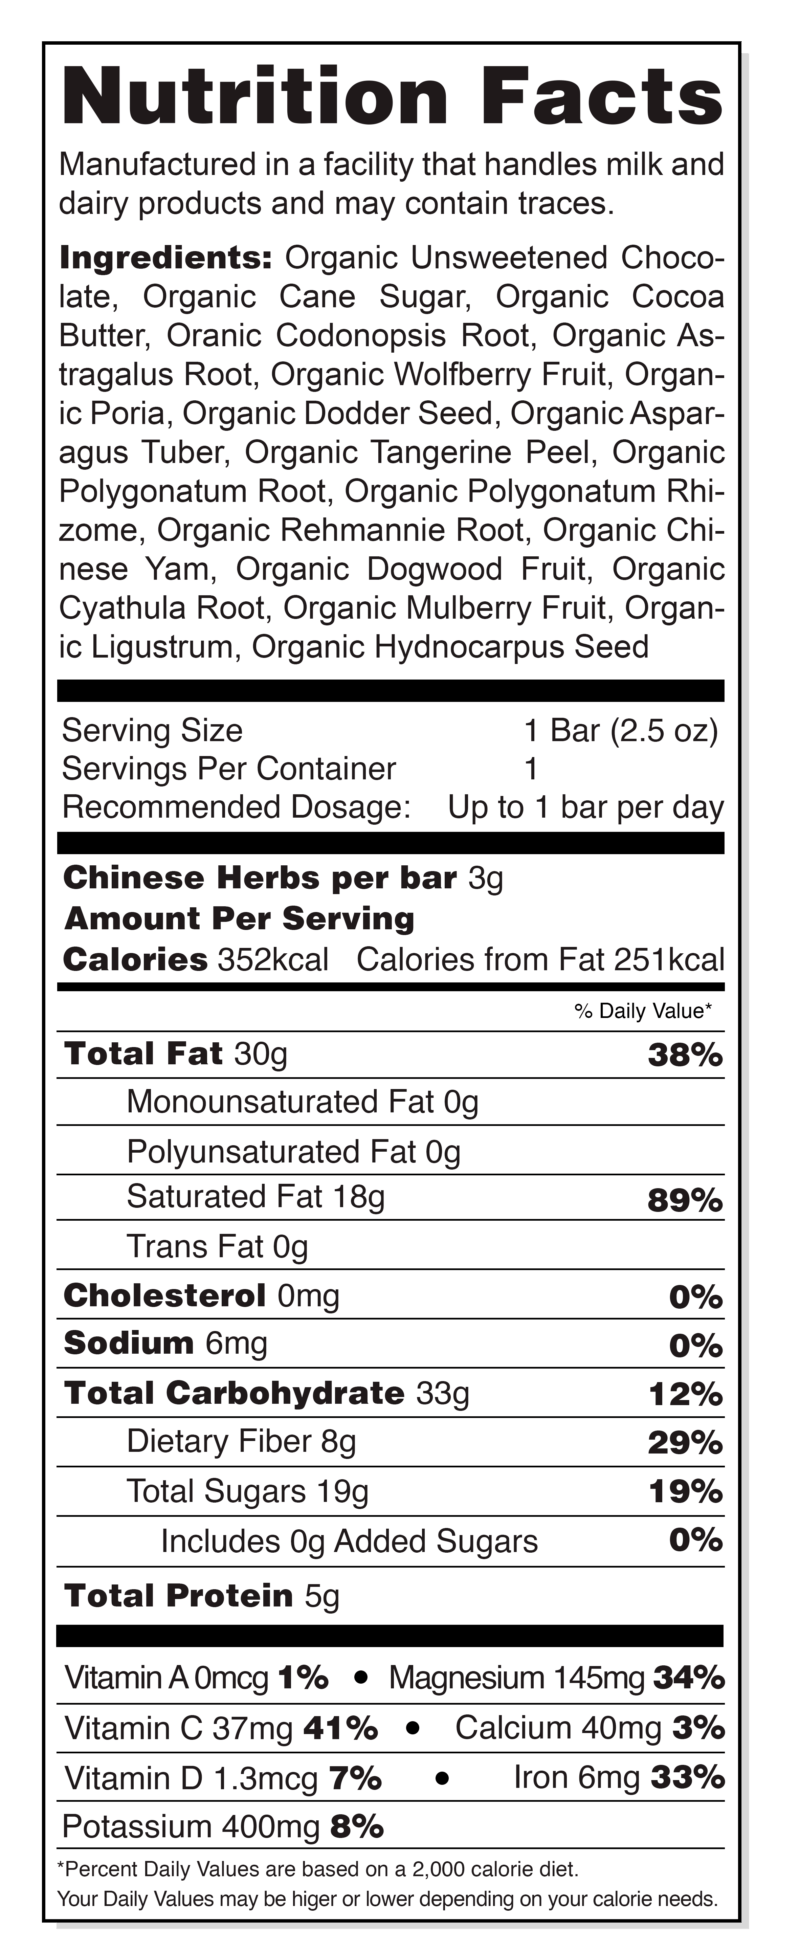 nutrition-facts-label-vector-templates_Longavity_Change-Bar